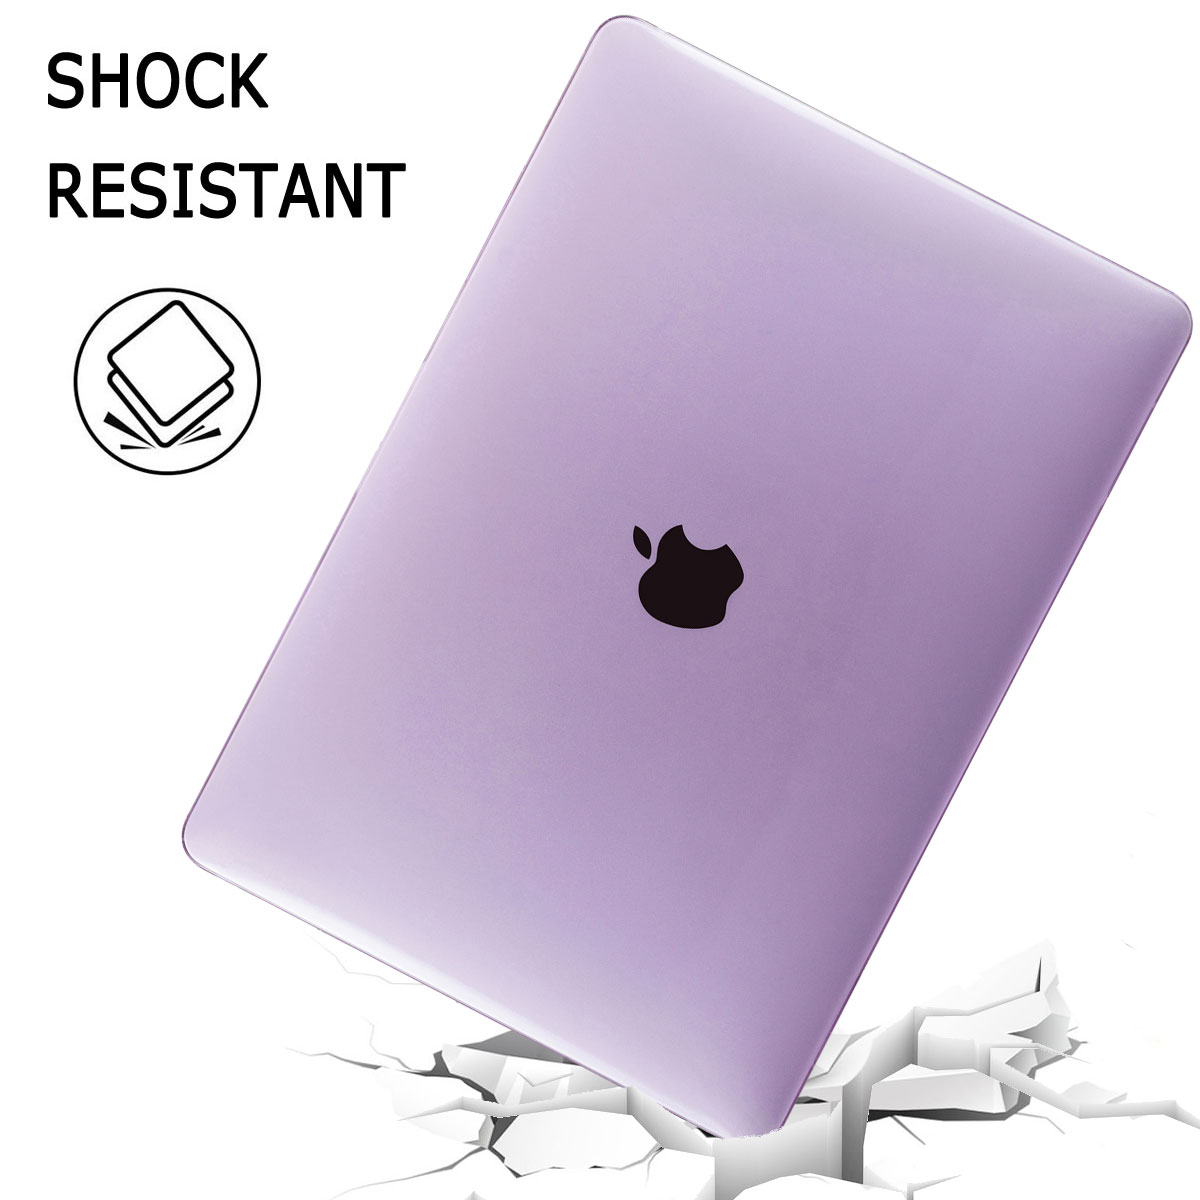 Shockproof-Laptop-Hard-Case-Keyboard-Cover-For-Macbook-Air-13-034-Inch-2018-A1932 thumbnail 54